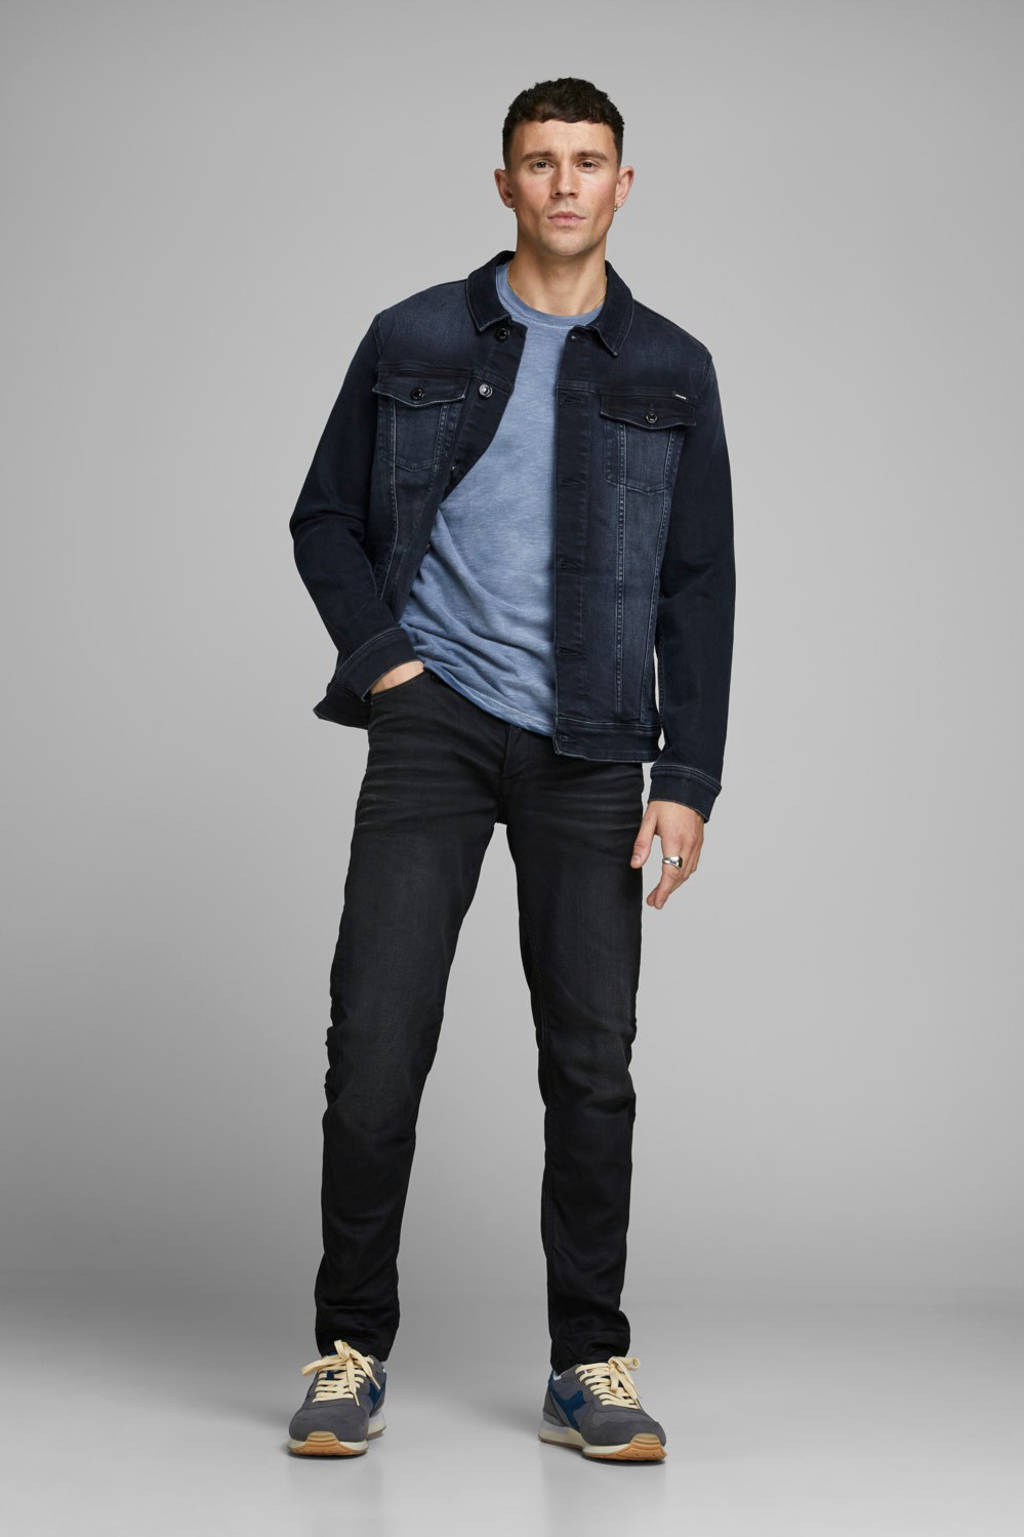 JACK & JONES JEANS INTELLIGENCE spijkerjas blue denim, Blue denim